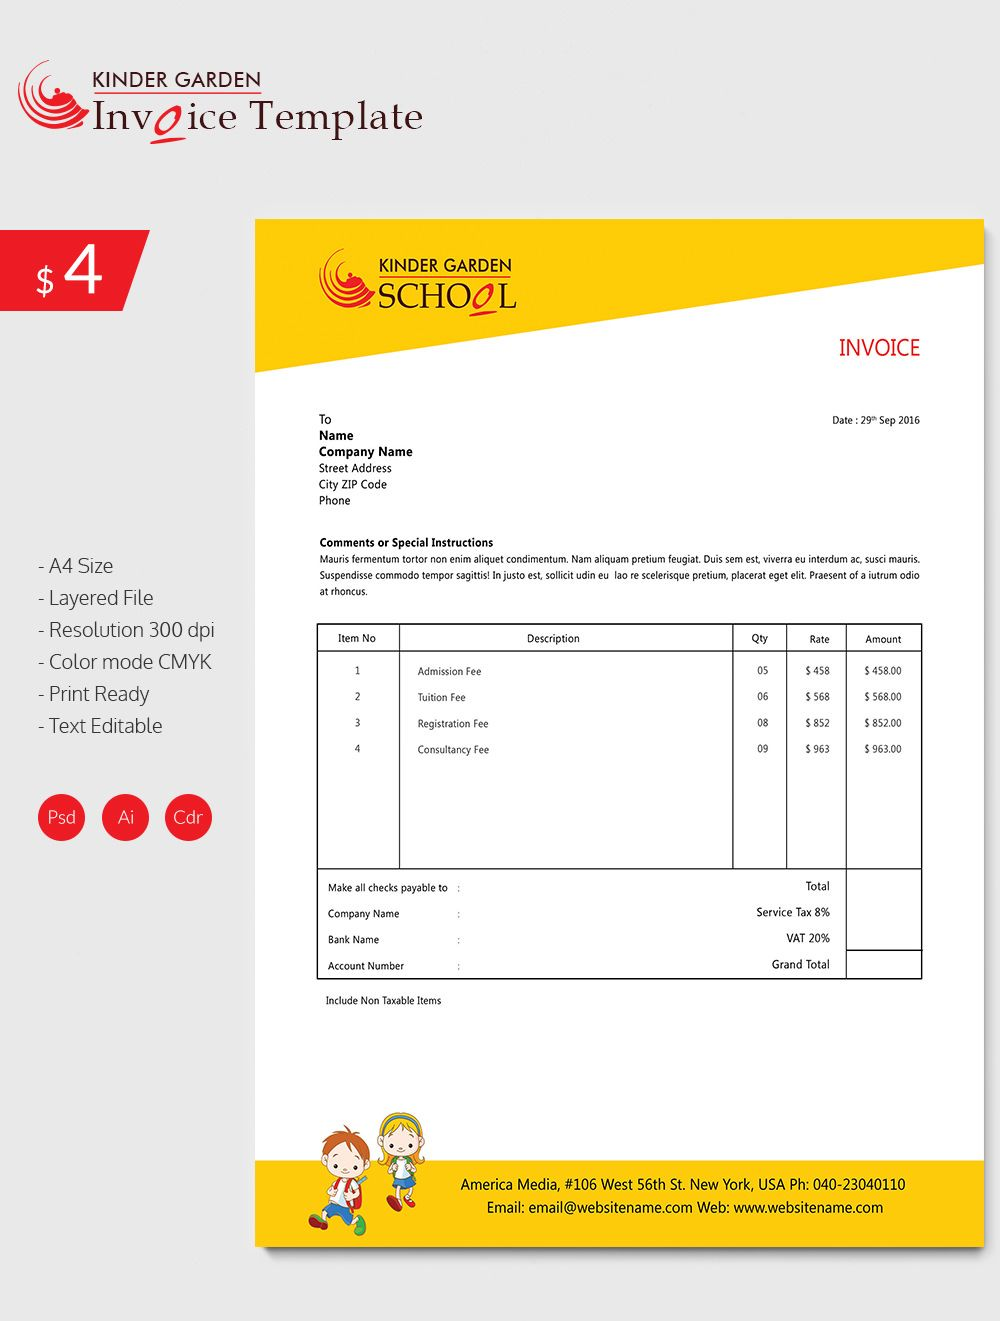 Enticing Kindergarten School Invoice Template , Invoice Template For Mac  Online , Mac Is A System  Free Online Invoice System